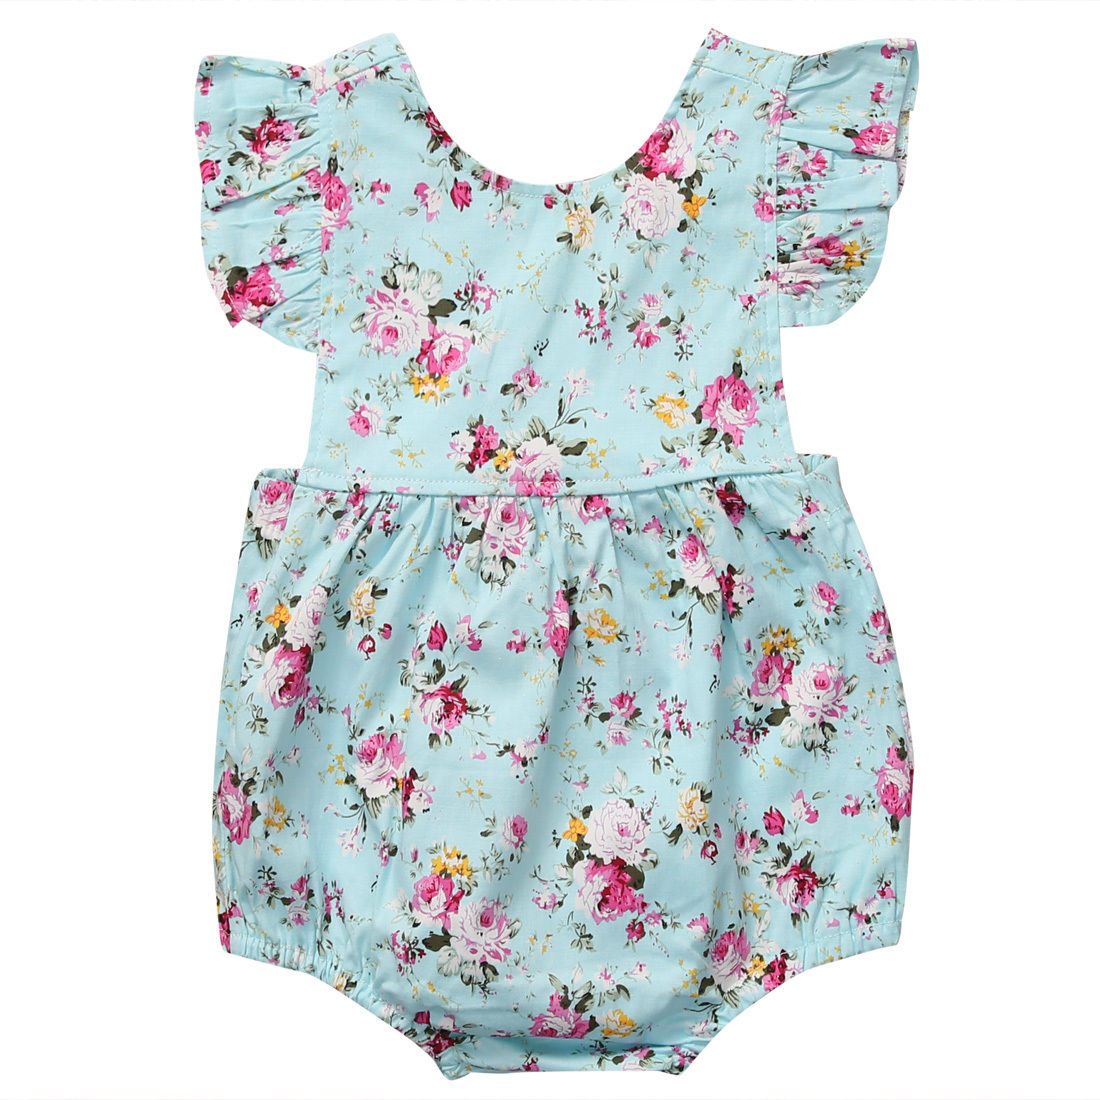 2017 Floral Newborn Baby Girl Romper Ruffles Sleeve Infant Bebes Princess Girls Jumpsuit Outfits Sunsuit Children Clothes summer newborn infant baby girl romper short sleeve floral romper jumpsuit outfits sunsuit clothes